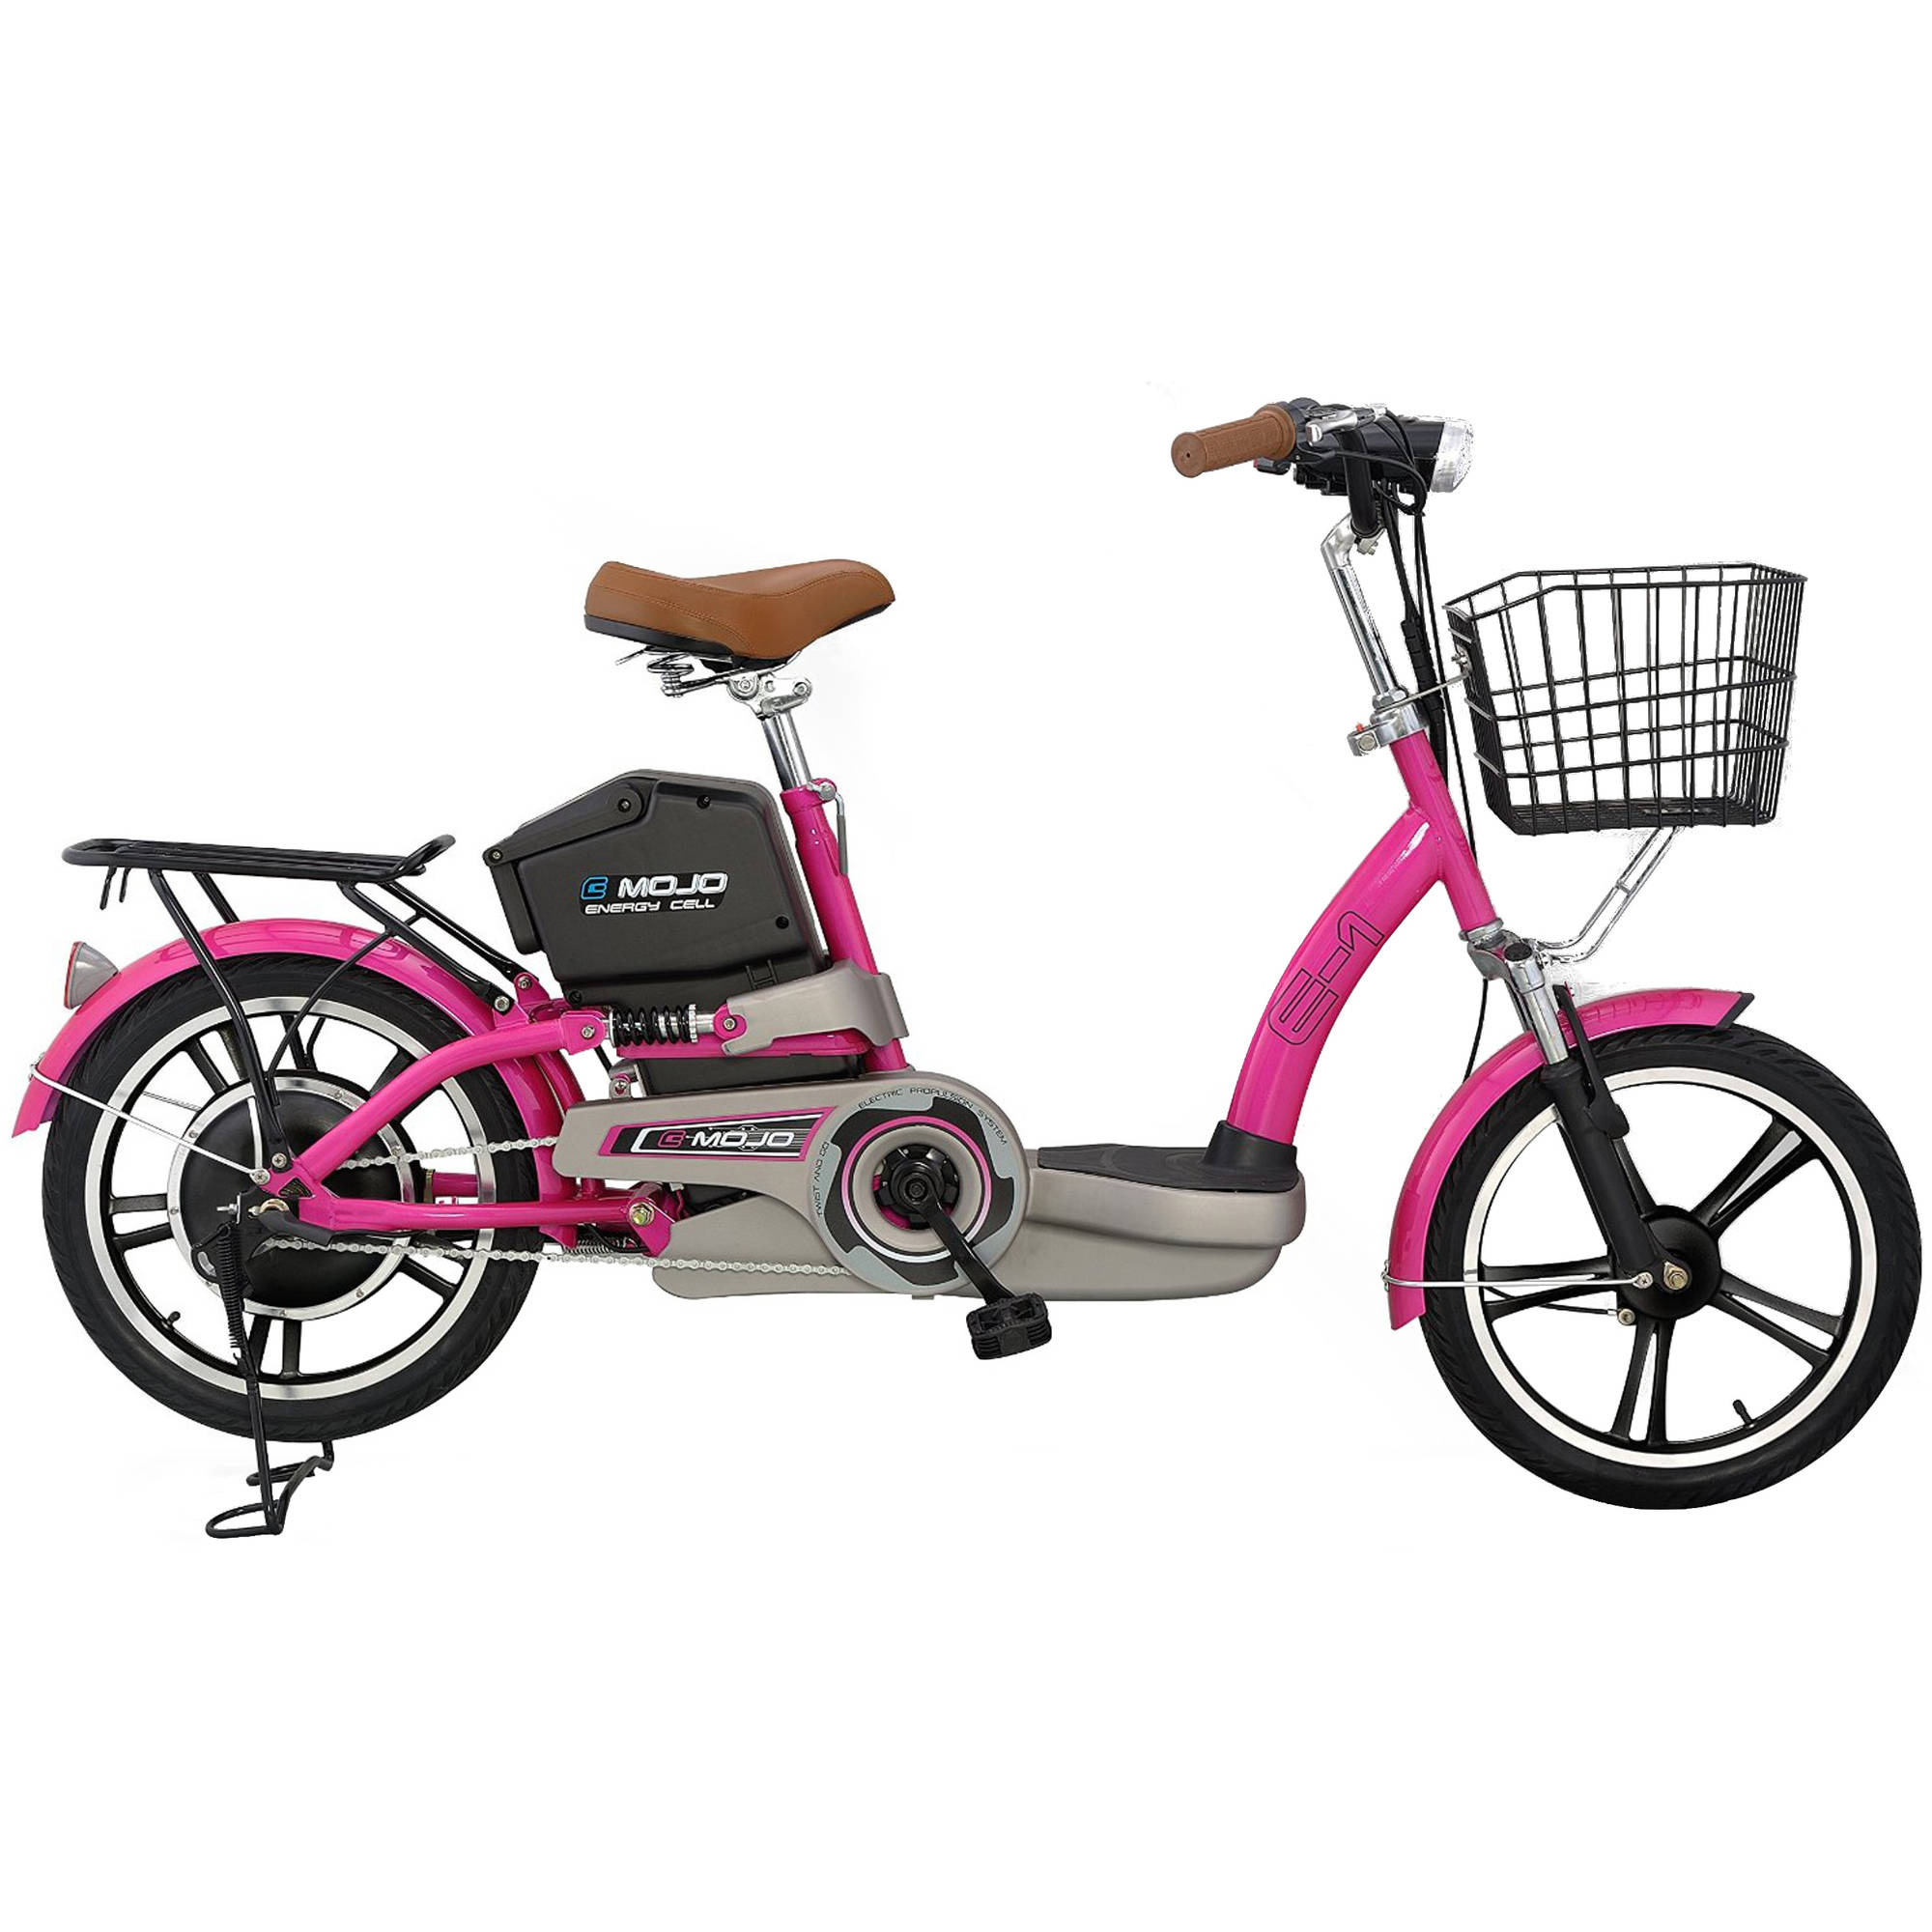 E1 Electric Bike with Lithium Battery, Lava Pink